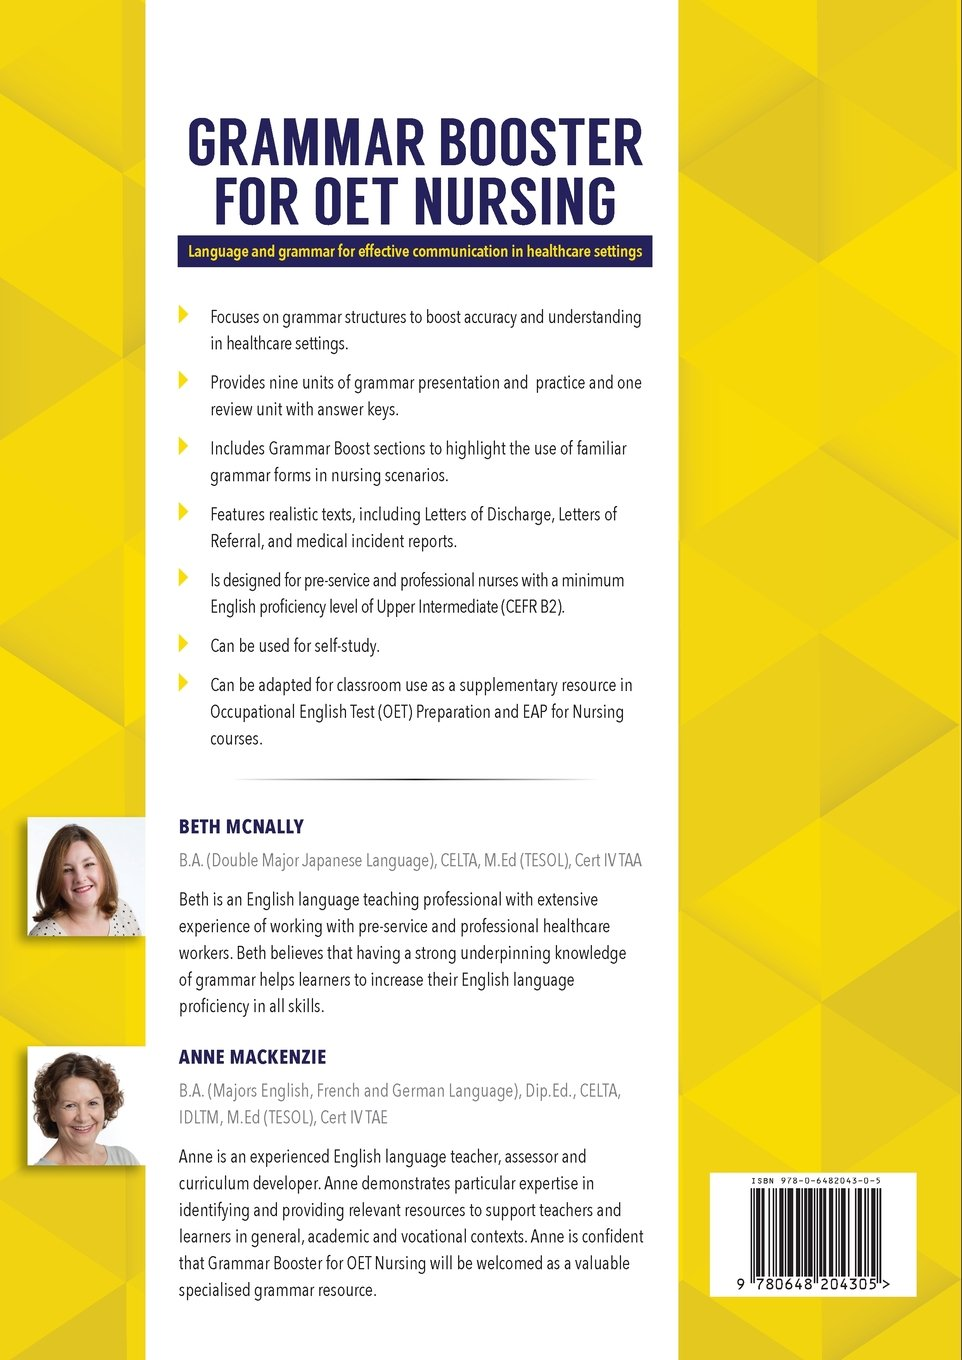 Grammar Booster for OET Nursing: Language and grammar for effective communication in healthcare settings by ELTWorks